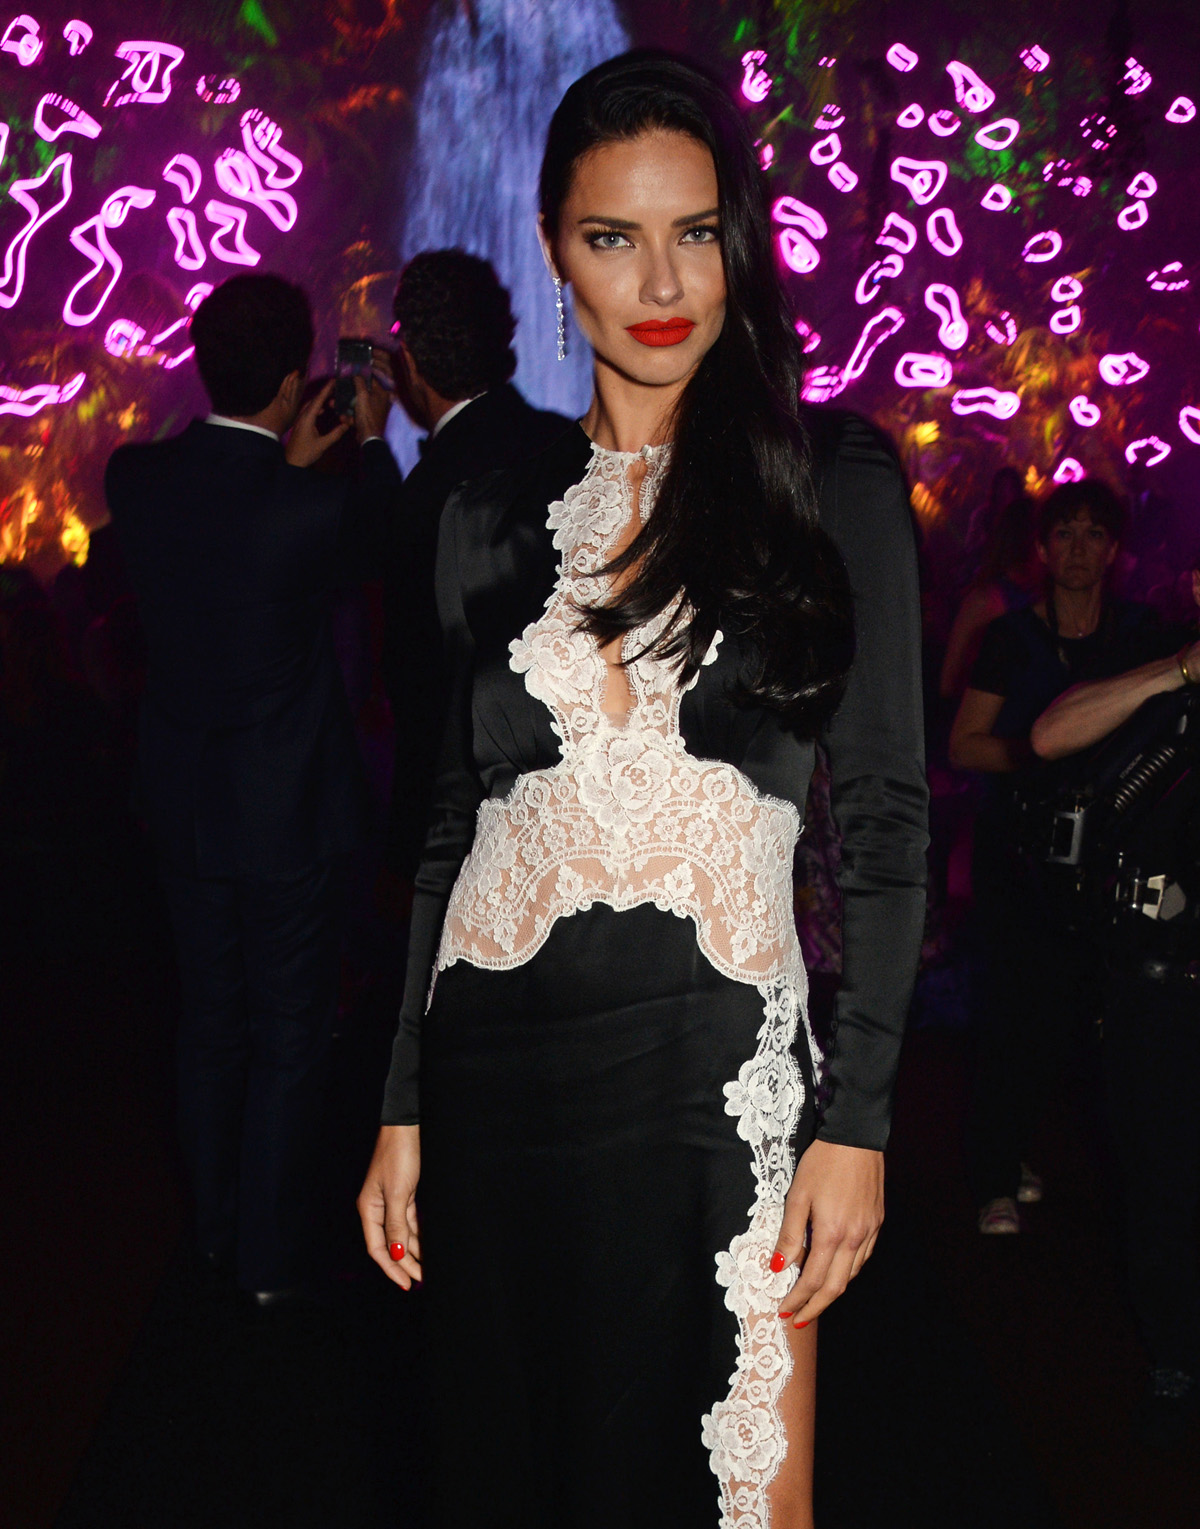 Chopard Wild Party - The 69th Annual Cannes Film Festival - Inside